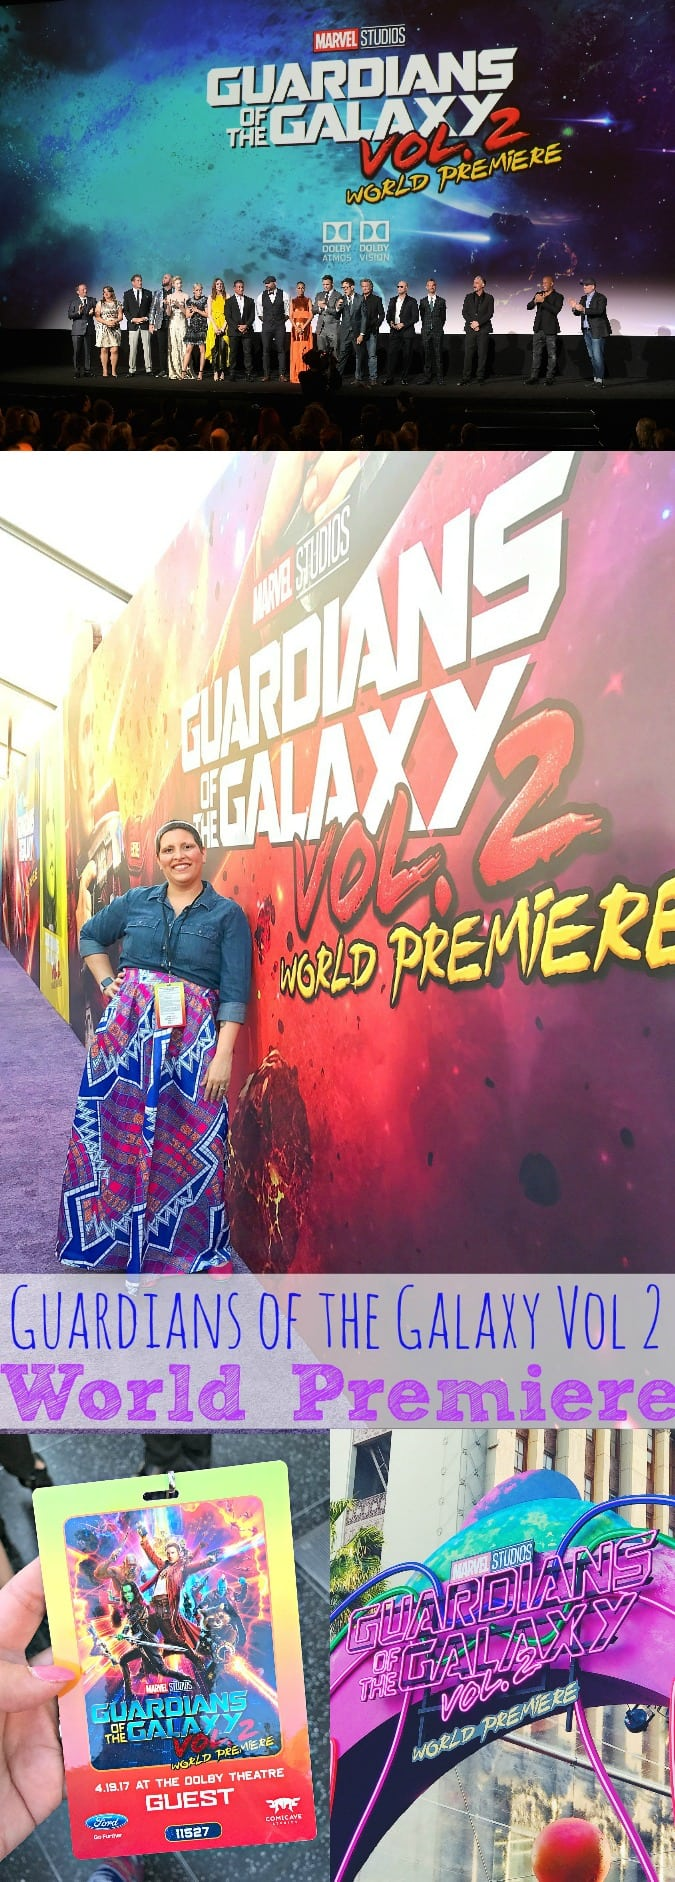 Guardians of the Galaxy Red Carpet Premiere